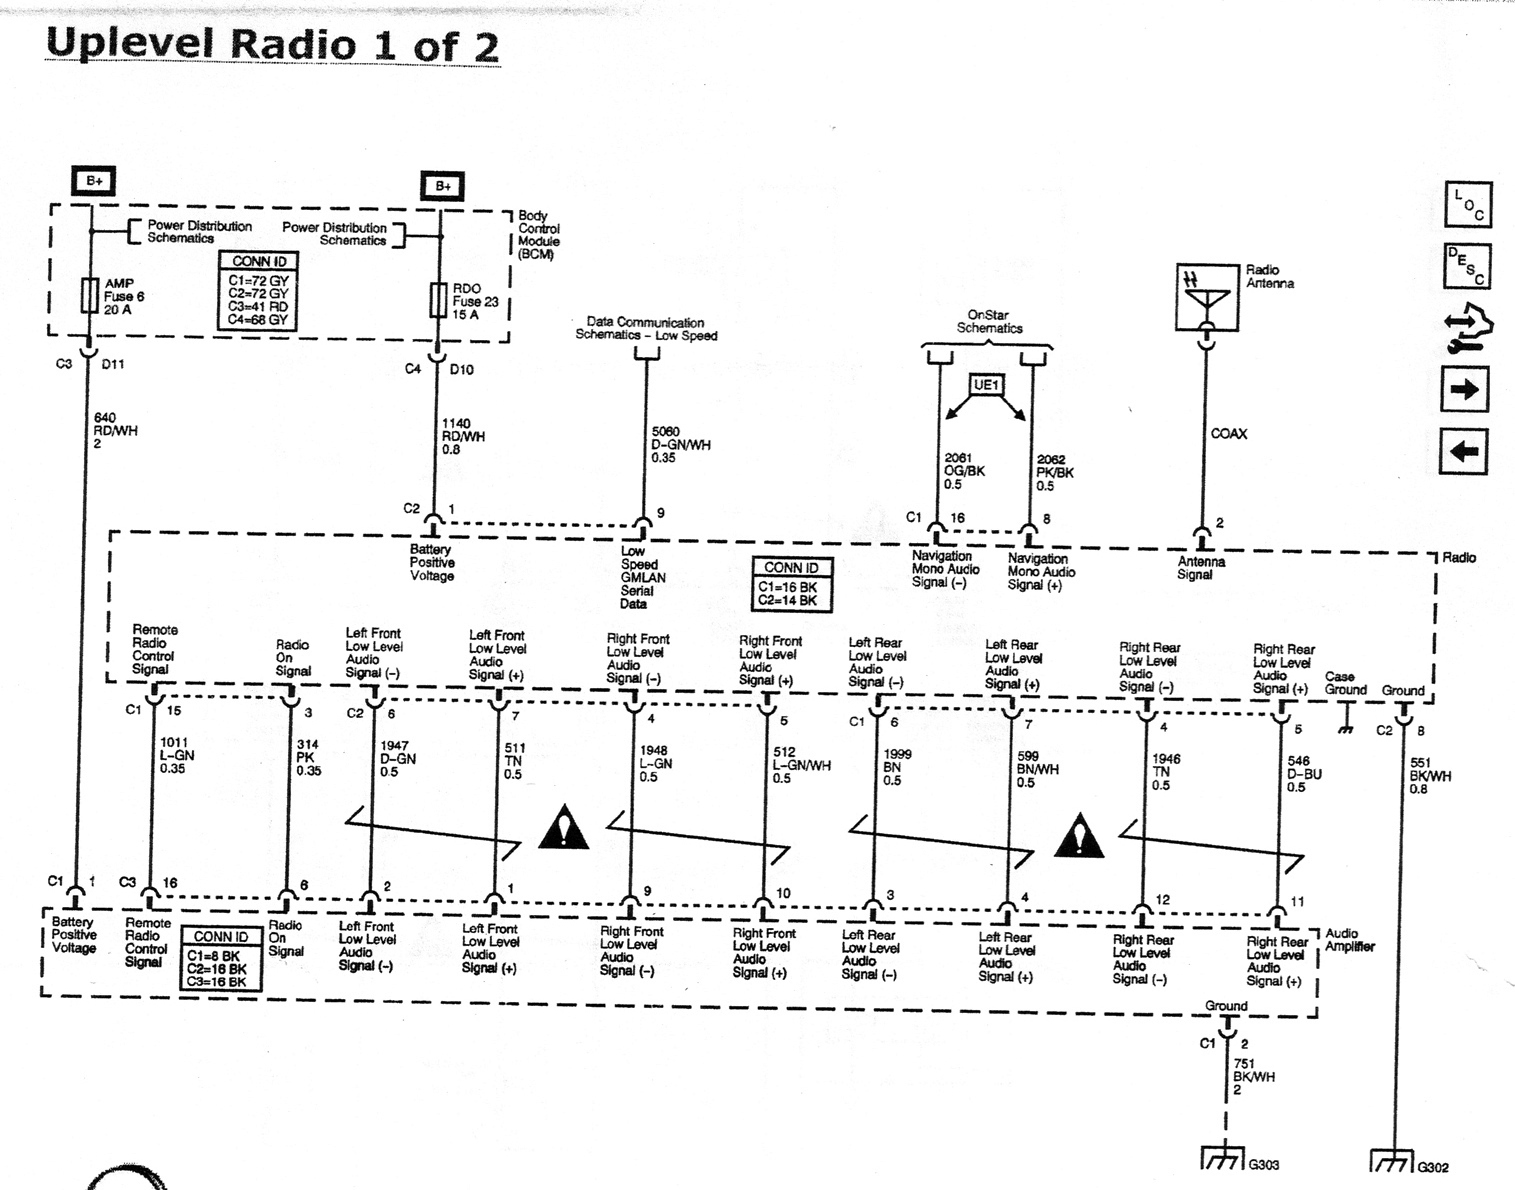 29801 monsoon amp speaker replacement monsoon_wiring_diagram_page_1 volkswagen monsoon wiring diagram wiring diagram simonand firebird monsoon wiring diagram at nearapp.co